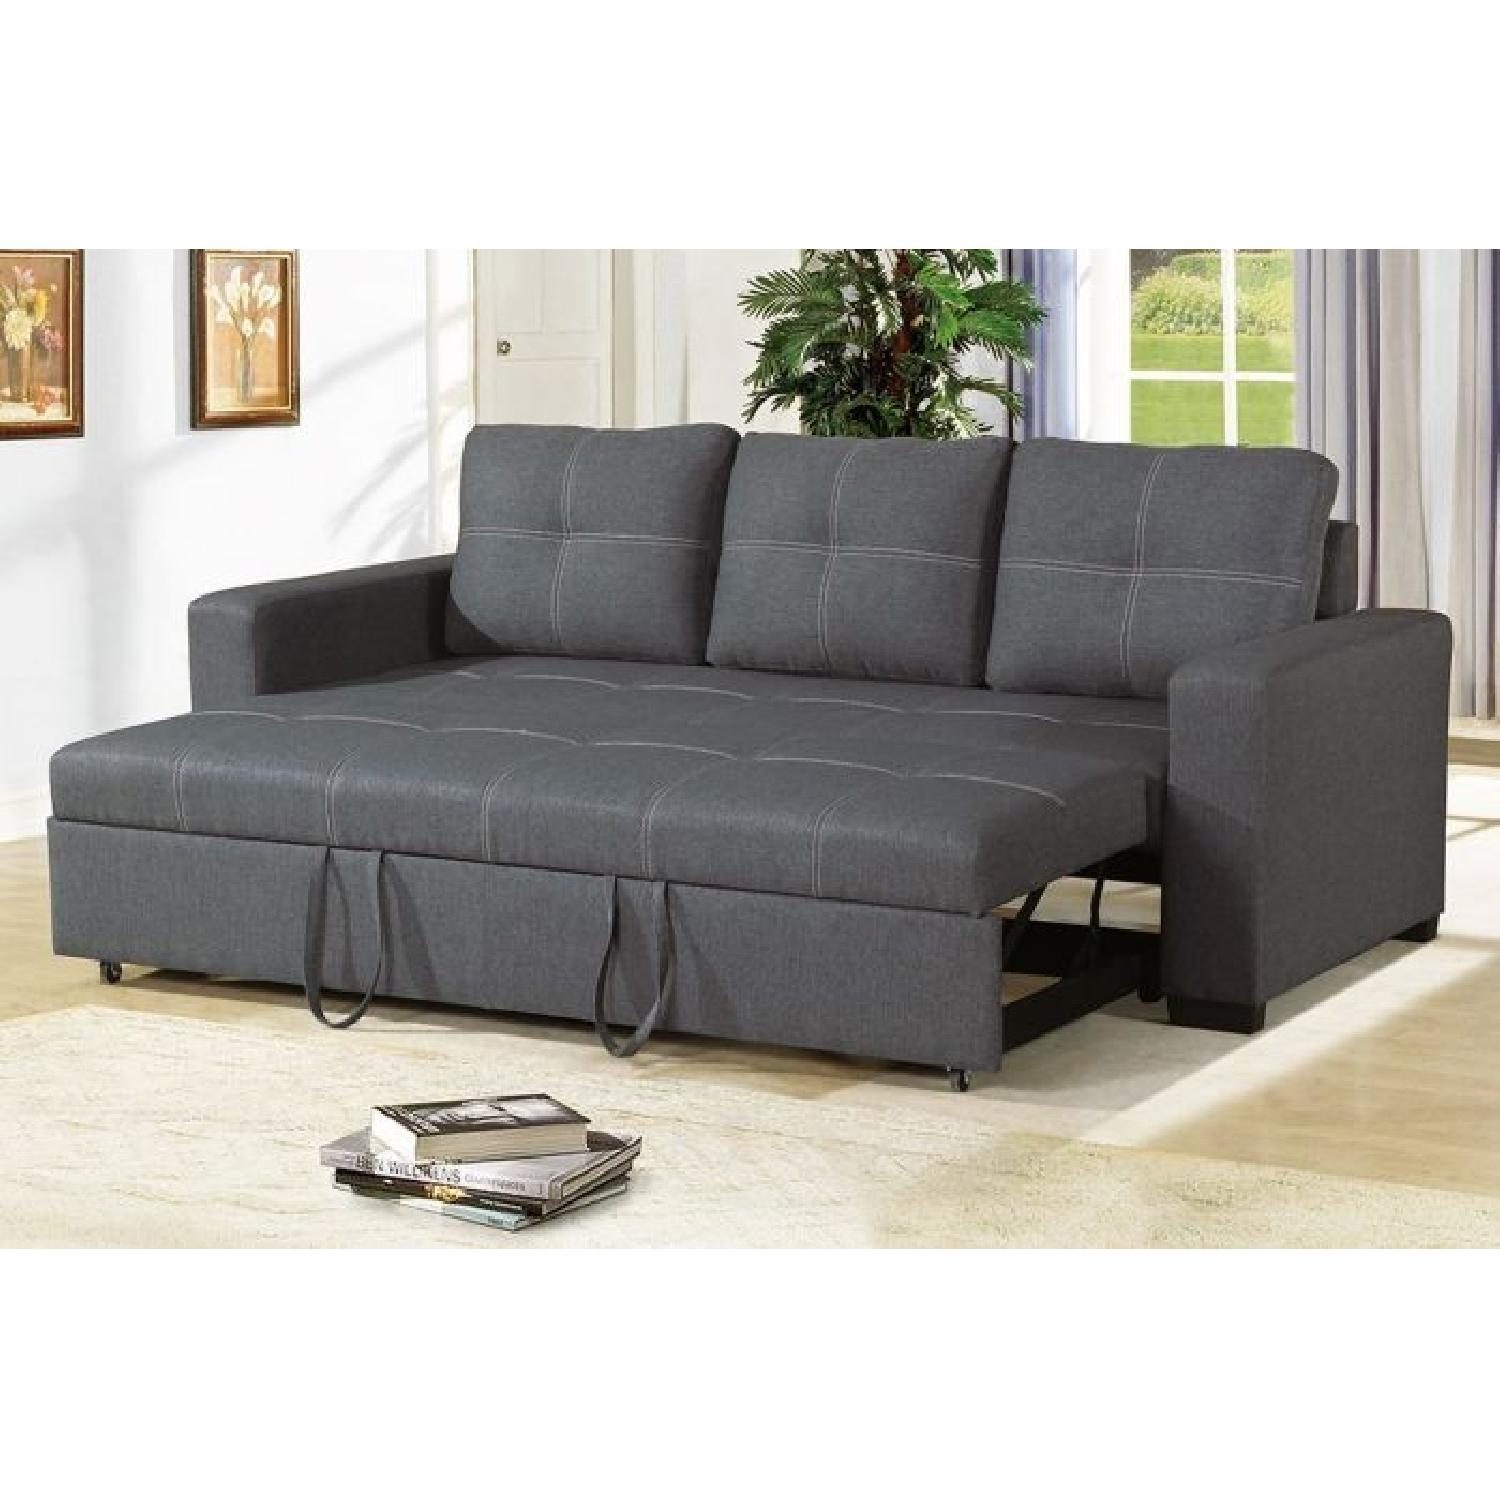 Blue Grey Polyfiber Convertible Sofa Bed